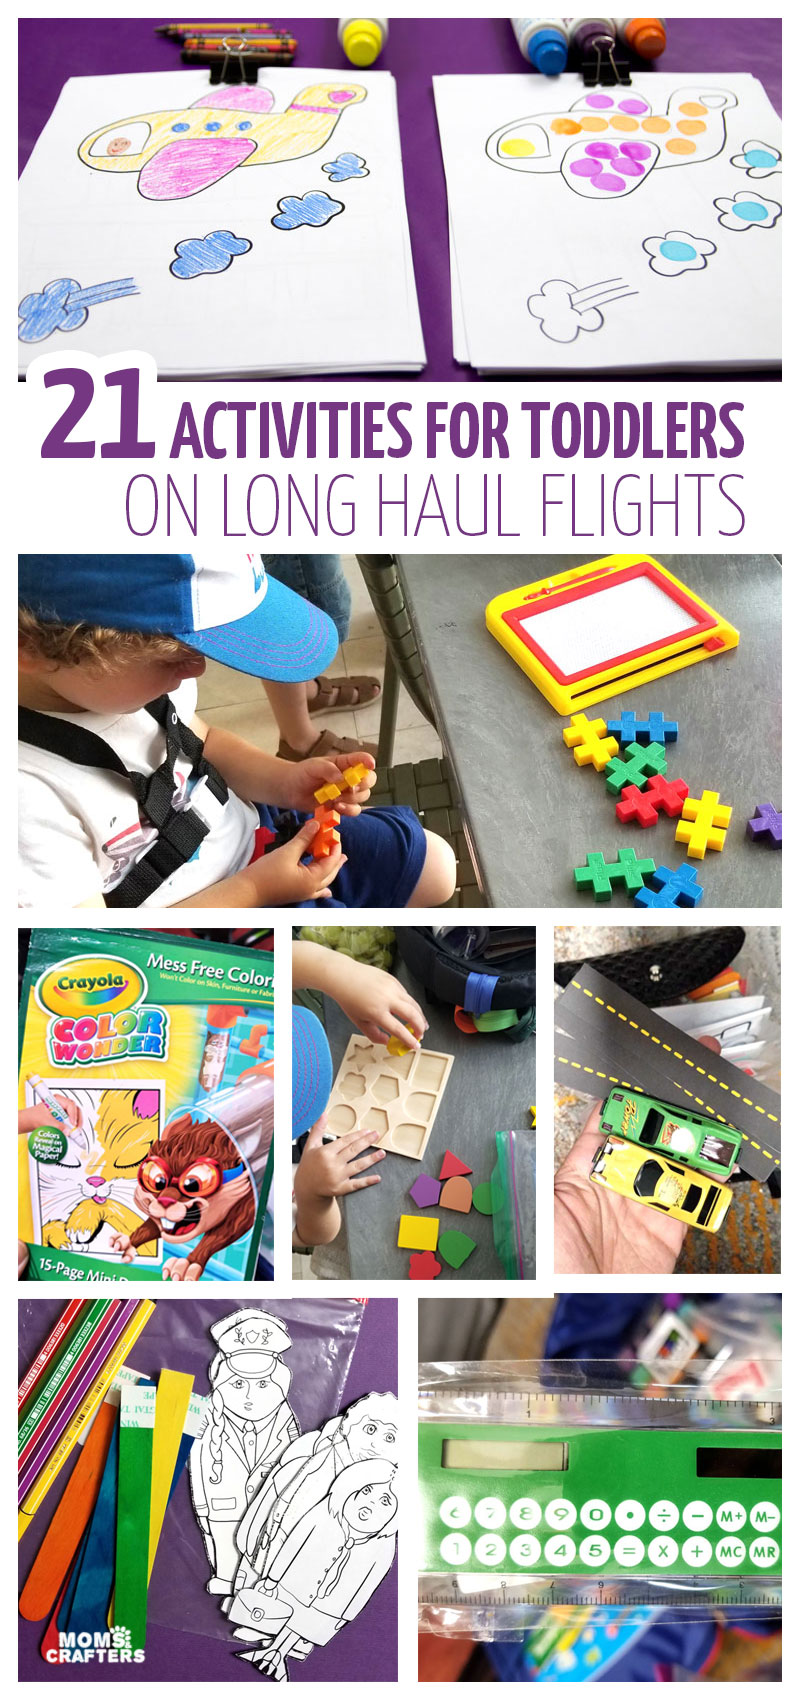 Click for some activities and tips for travel with toddlers on a plane. This carry on packing list for 2 year olds and 3 year olds is perfect for long flights and include many tips for keeping them happy.